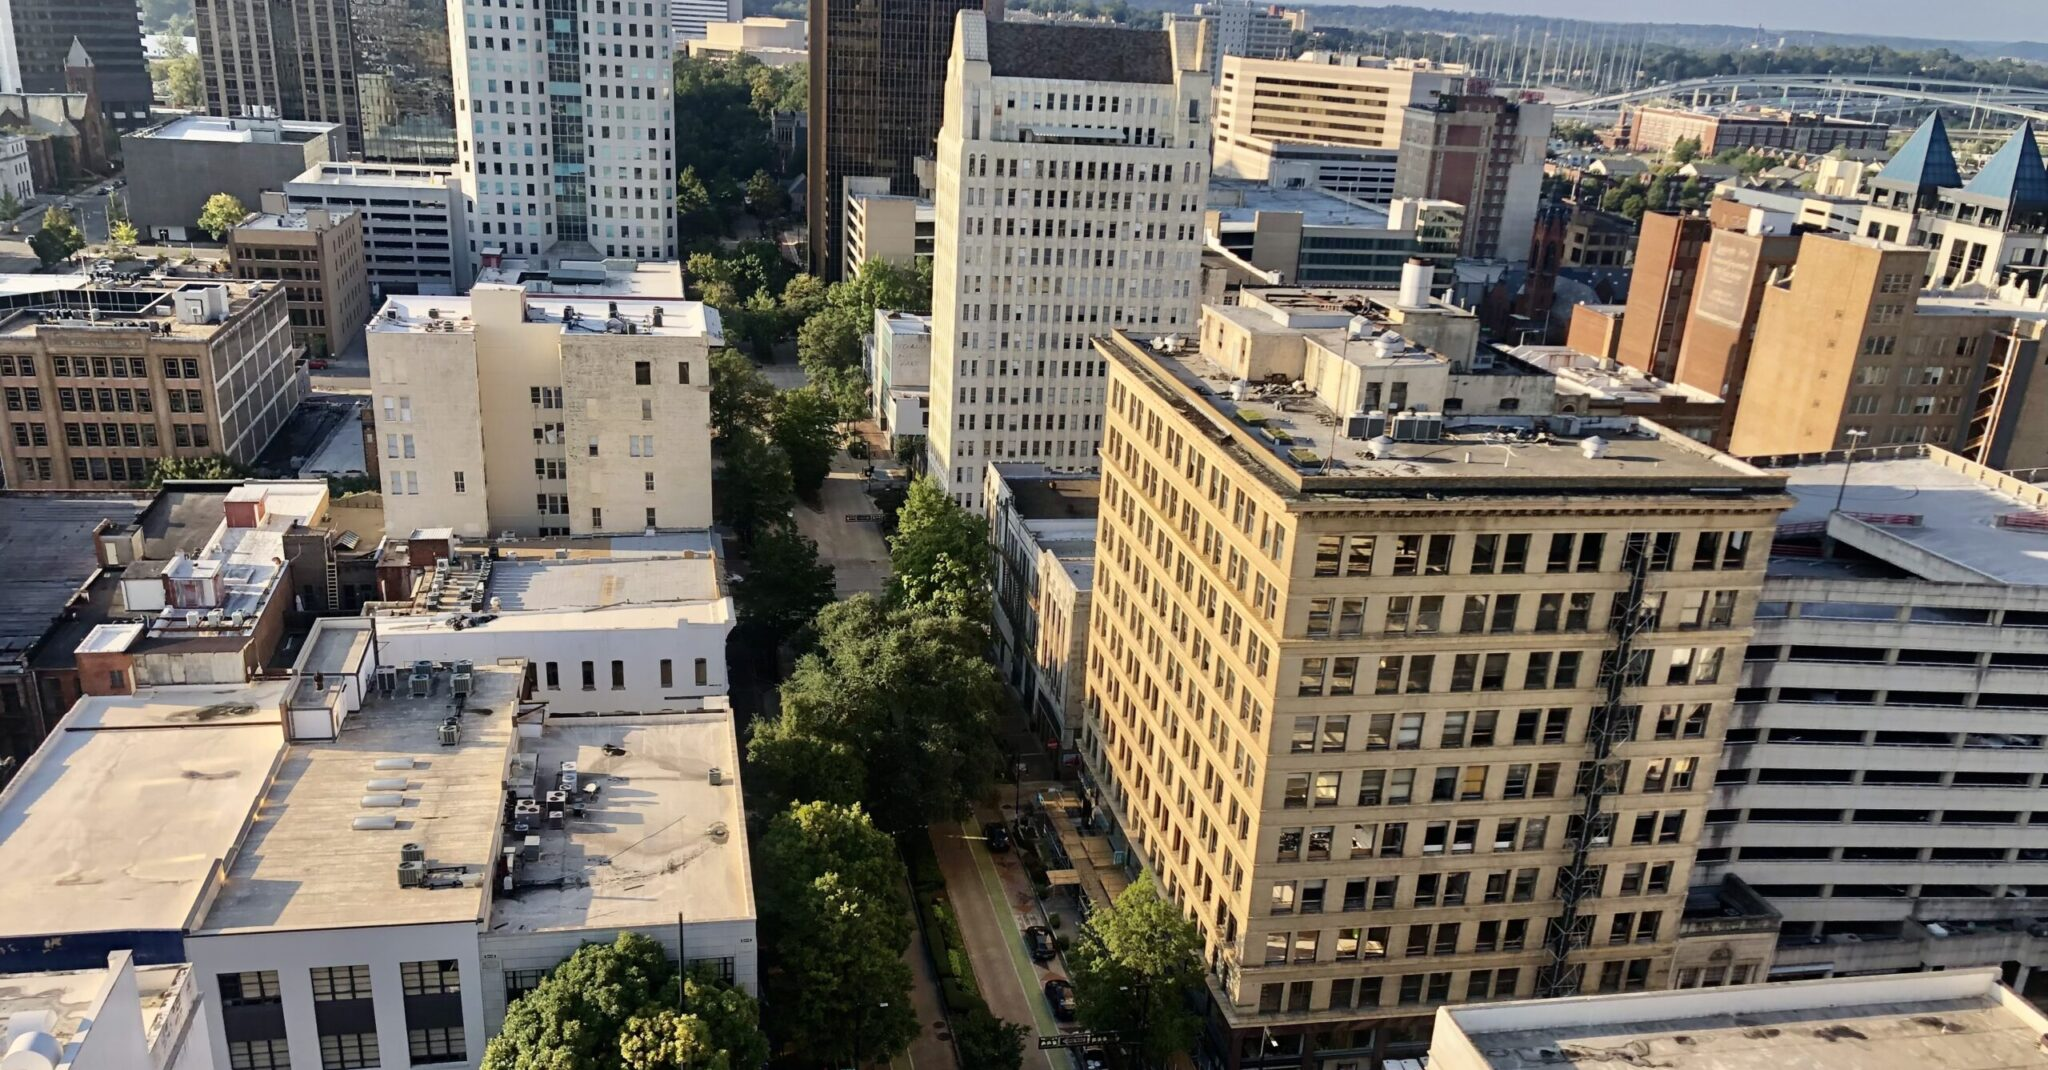 Birmingham Green, downtown's signature street is about to get a makeover